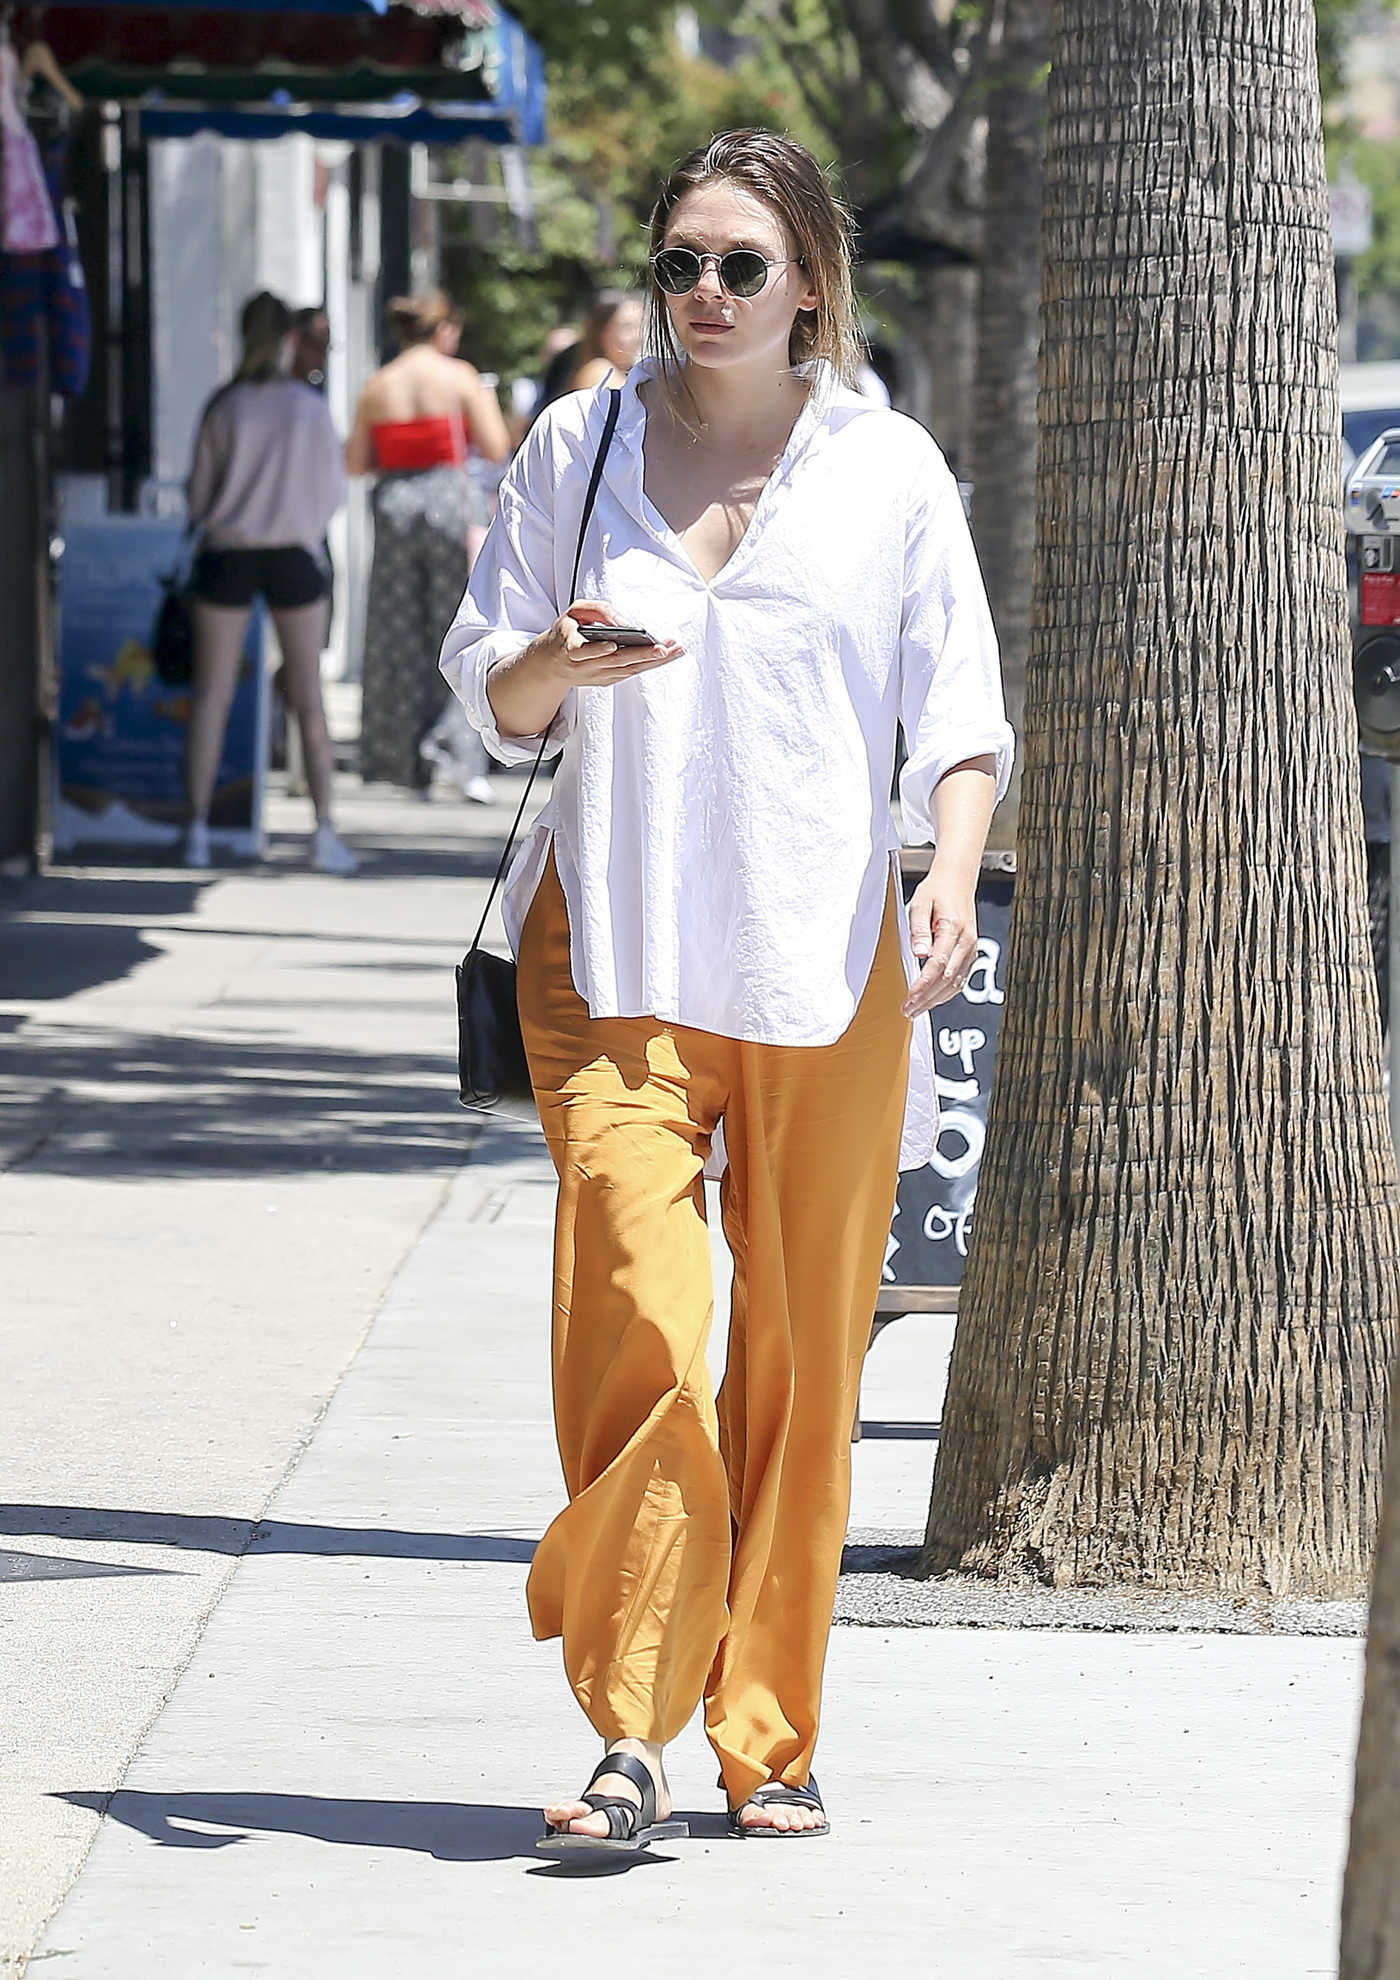 Elizabeth Olsen in a Yellow Pants Goes Shopping in Los Angeles 07/23/2018